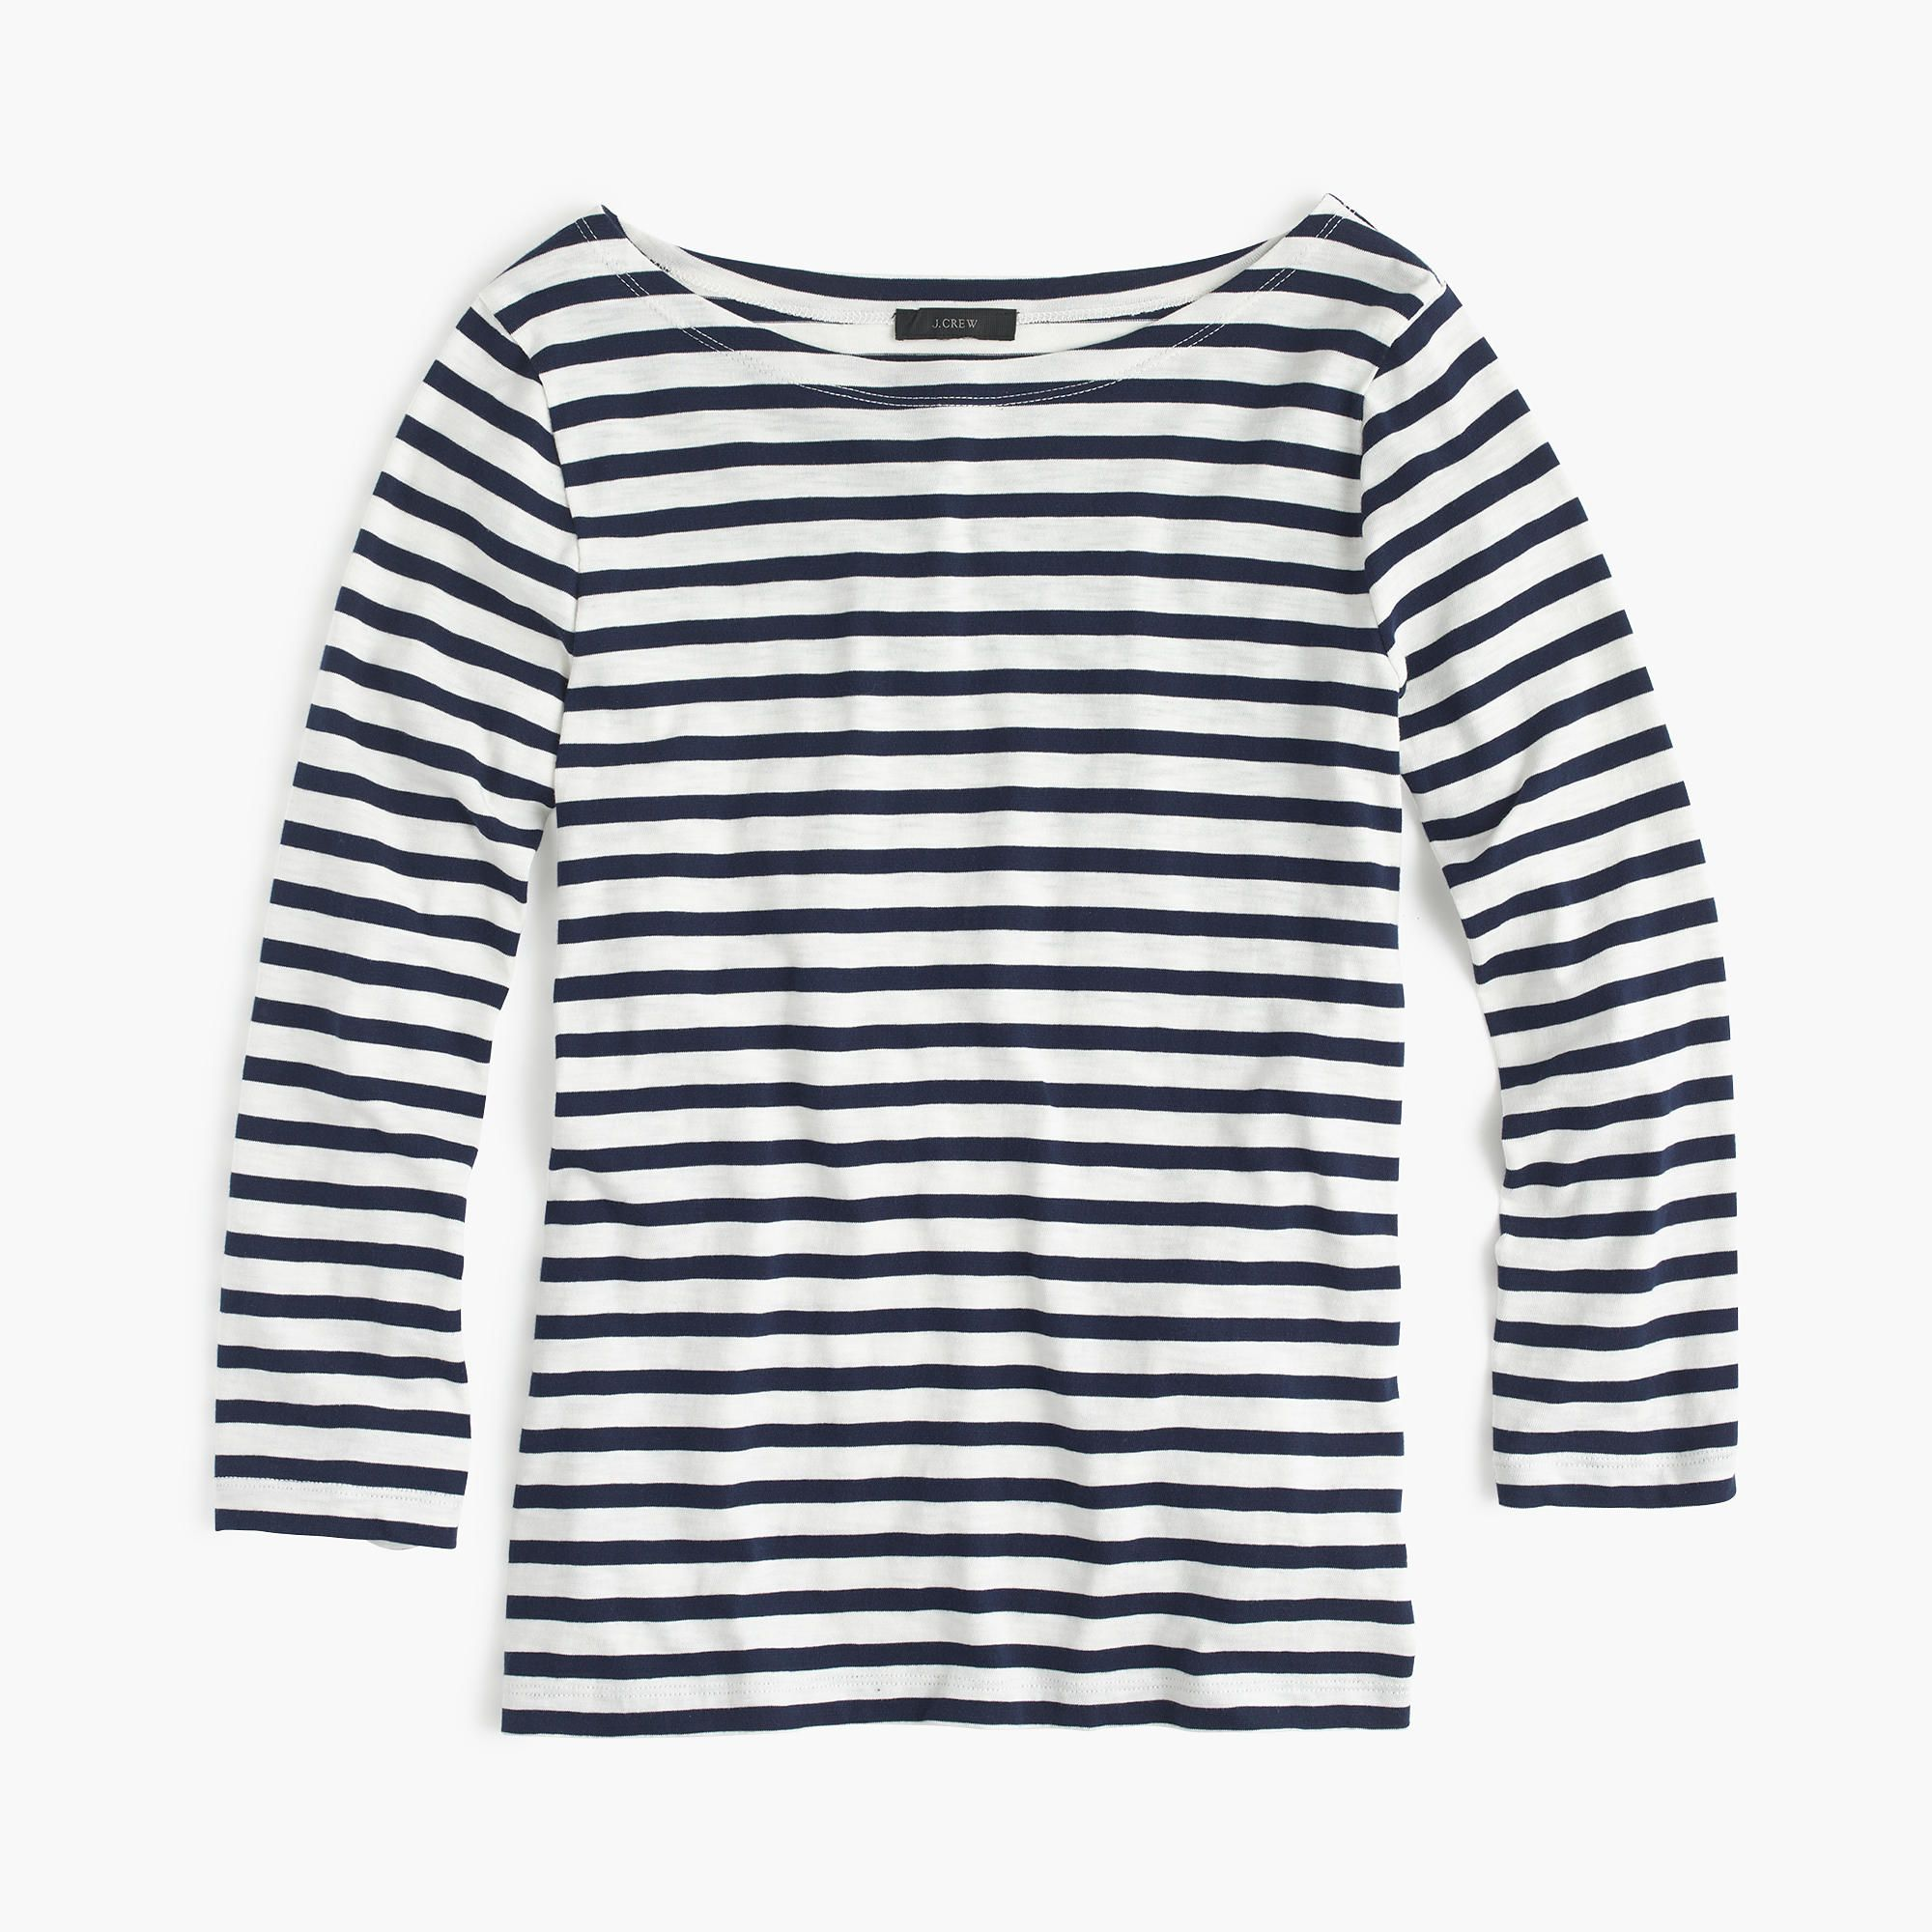 42045f517166c4 Shop the Striped Boatneck T-Shirt at JCrew.com and see the entire selection  of Women's Tees.